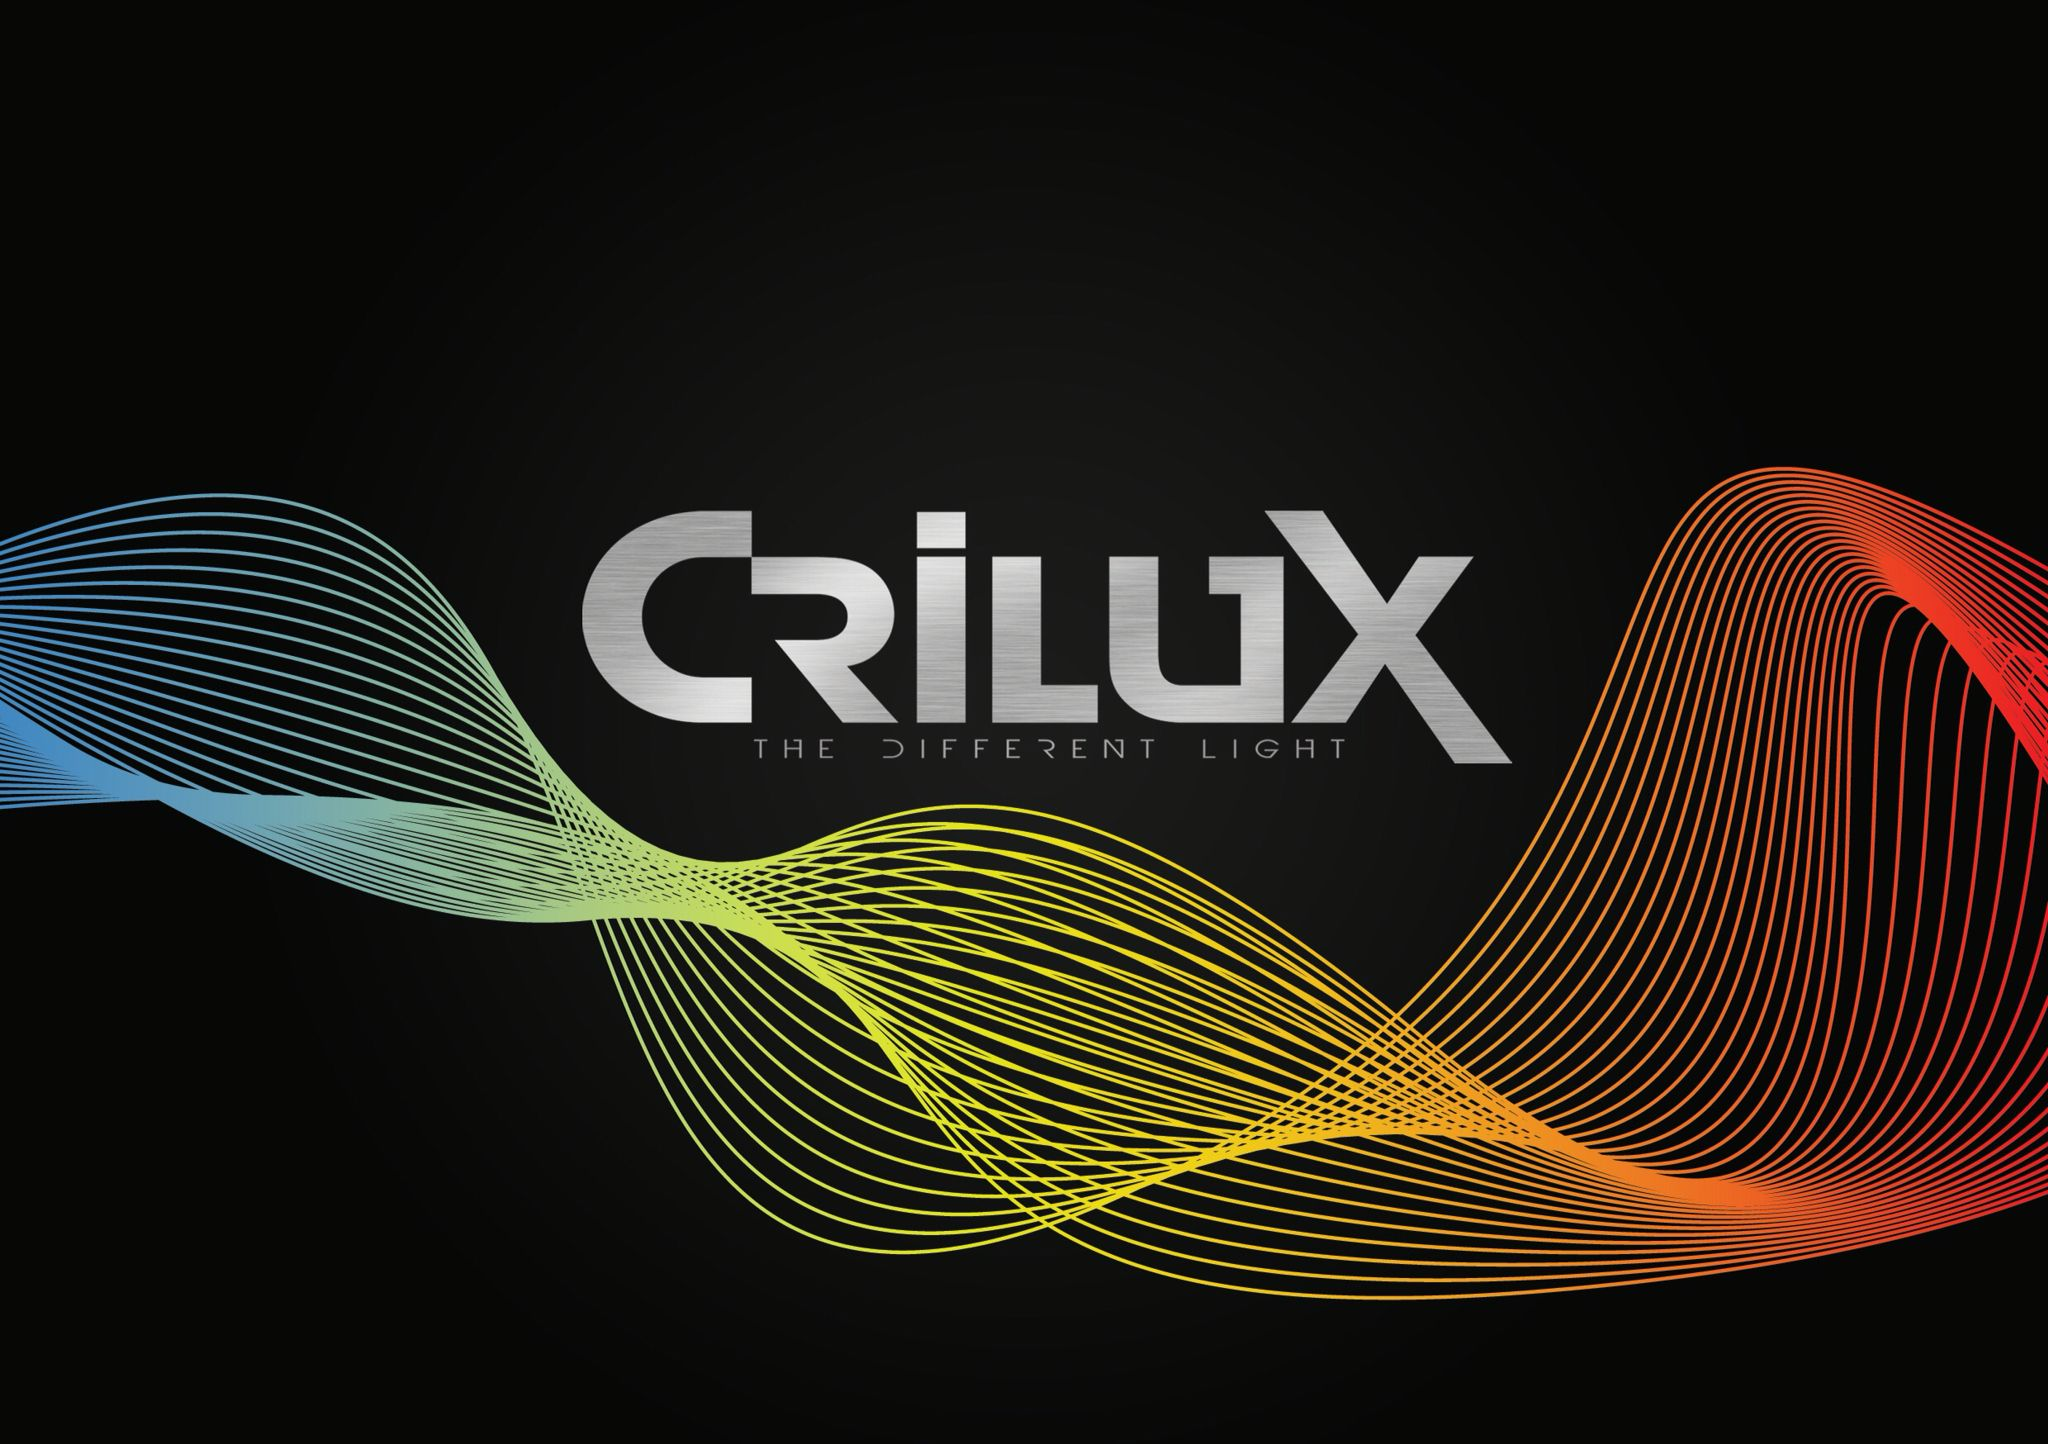 Logo Design Crilux Led.